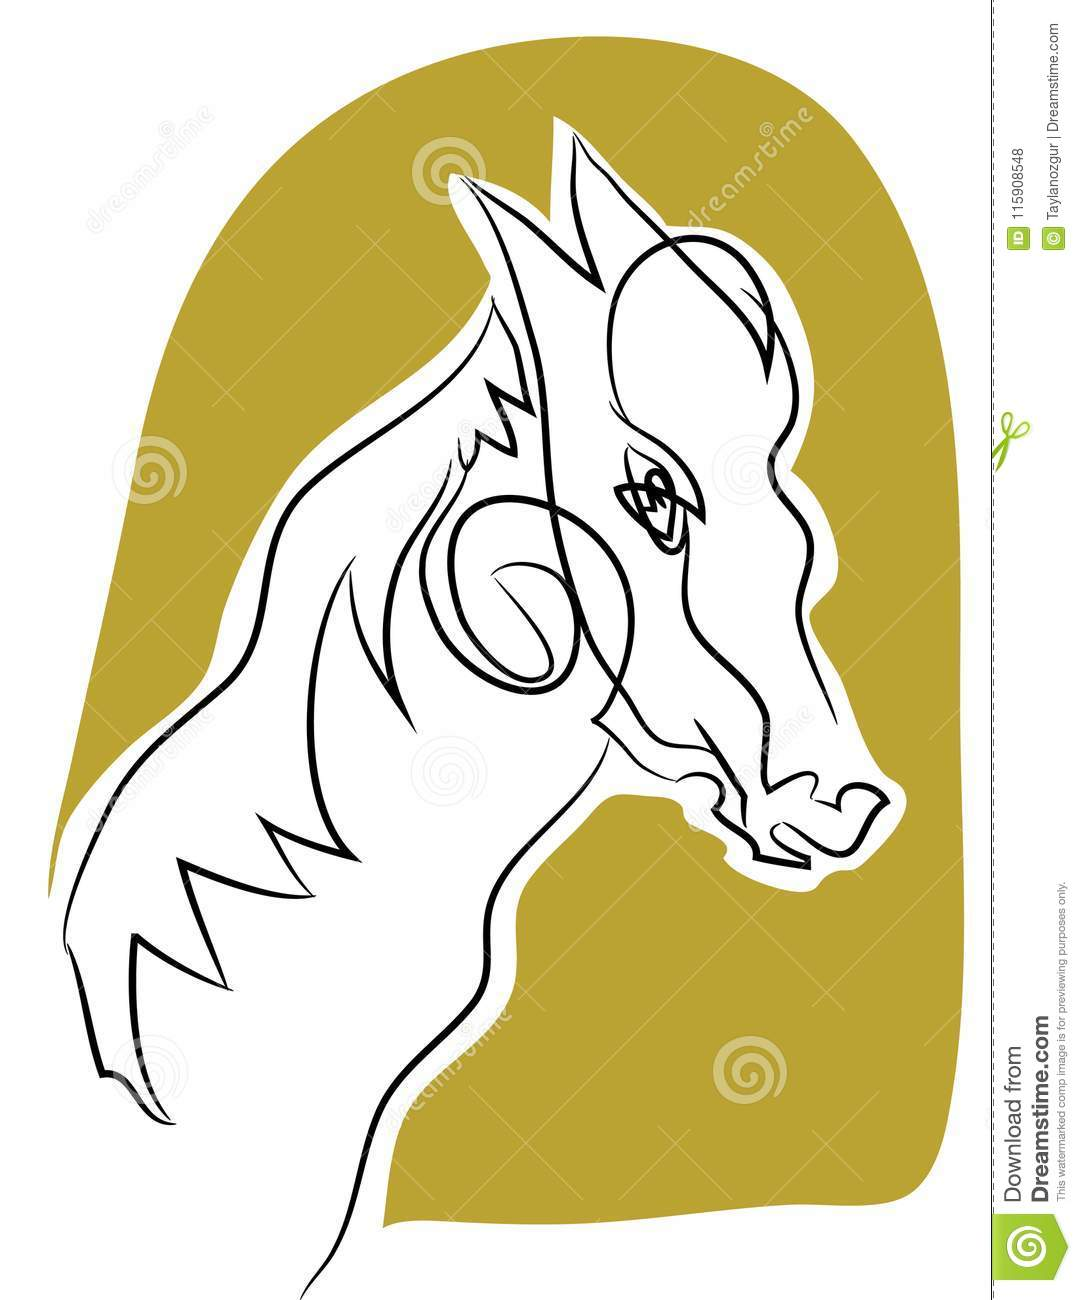 Horse Head Line Drawing Stock Vector Illustration Of Horseback 115908548